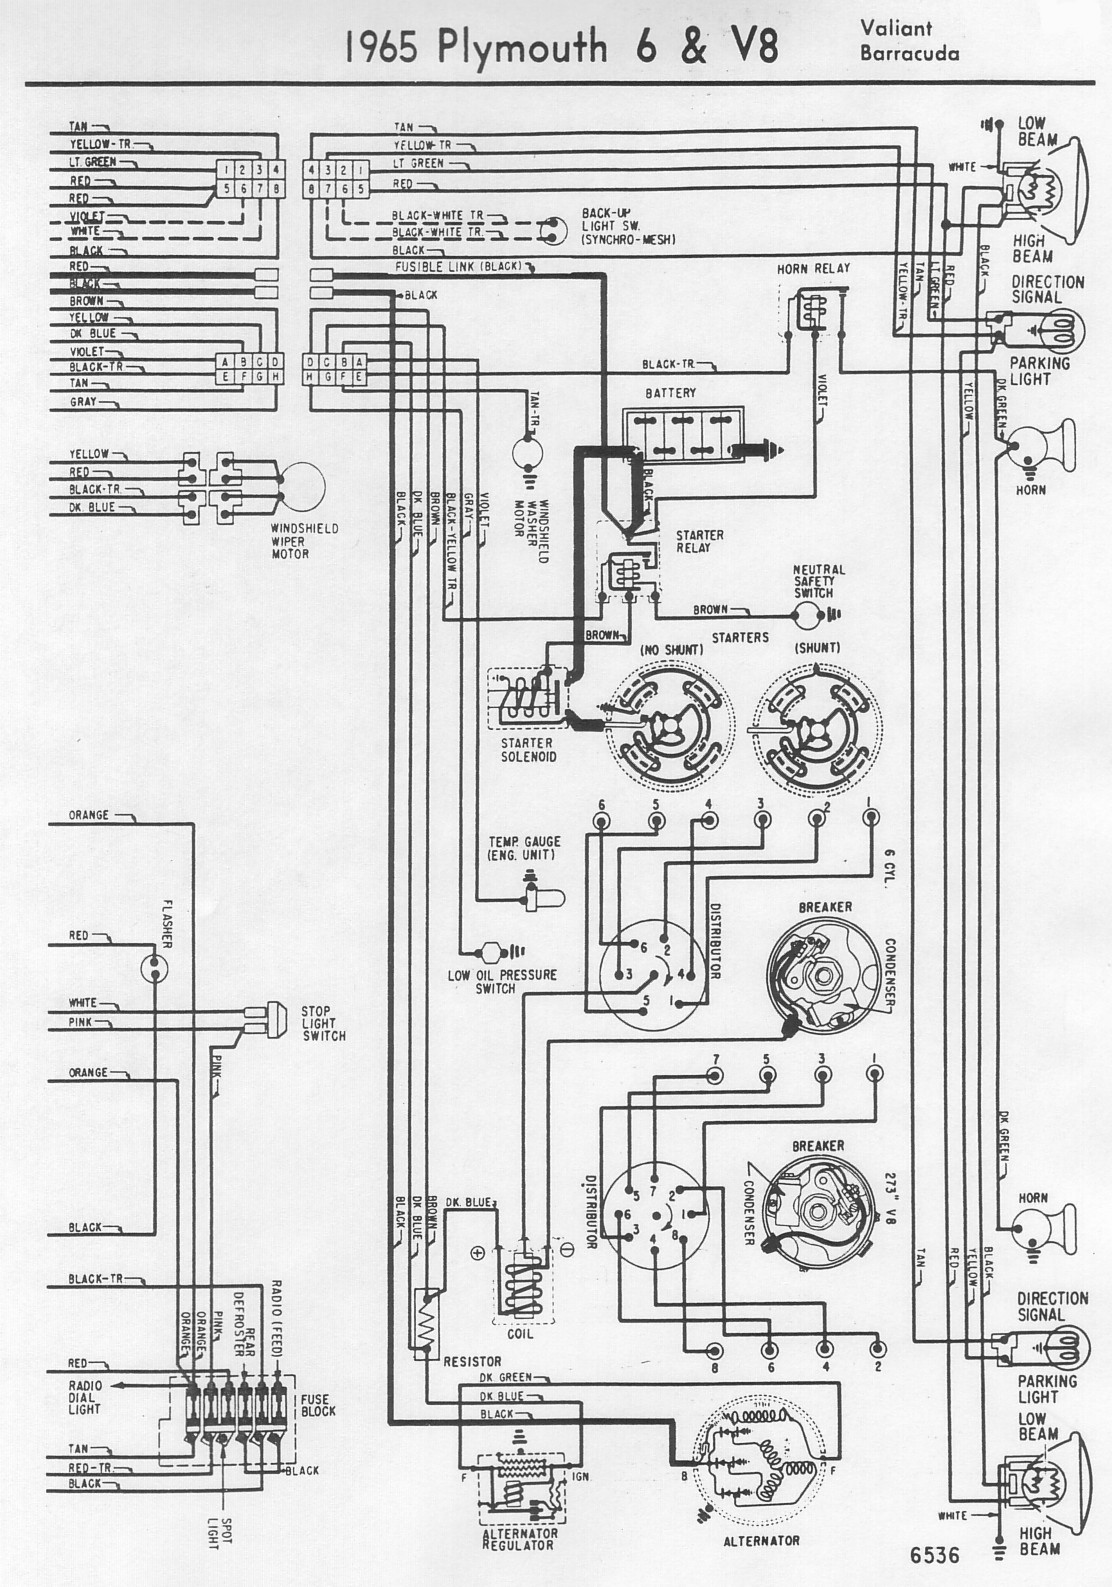 Free Auto Wiring Diagram: 1965 Plymouth Valiant or